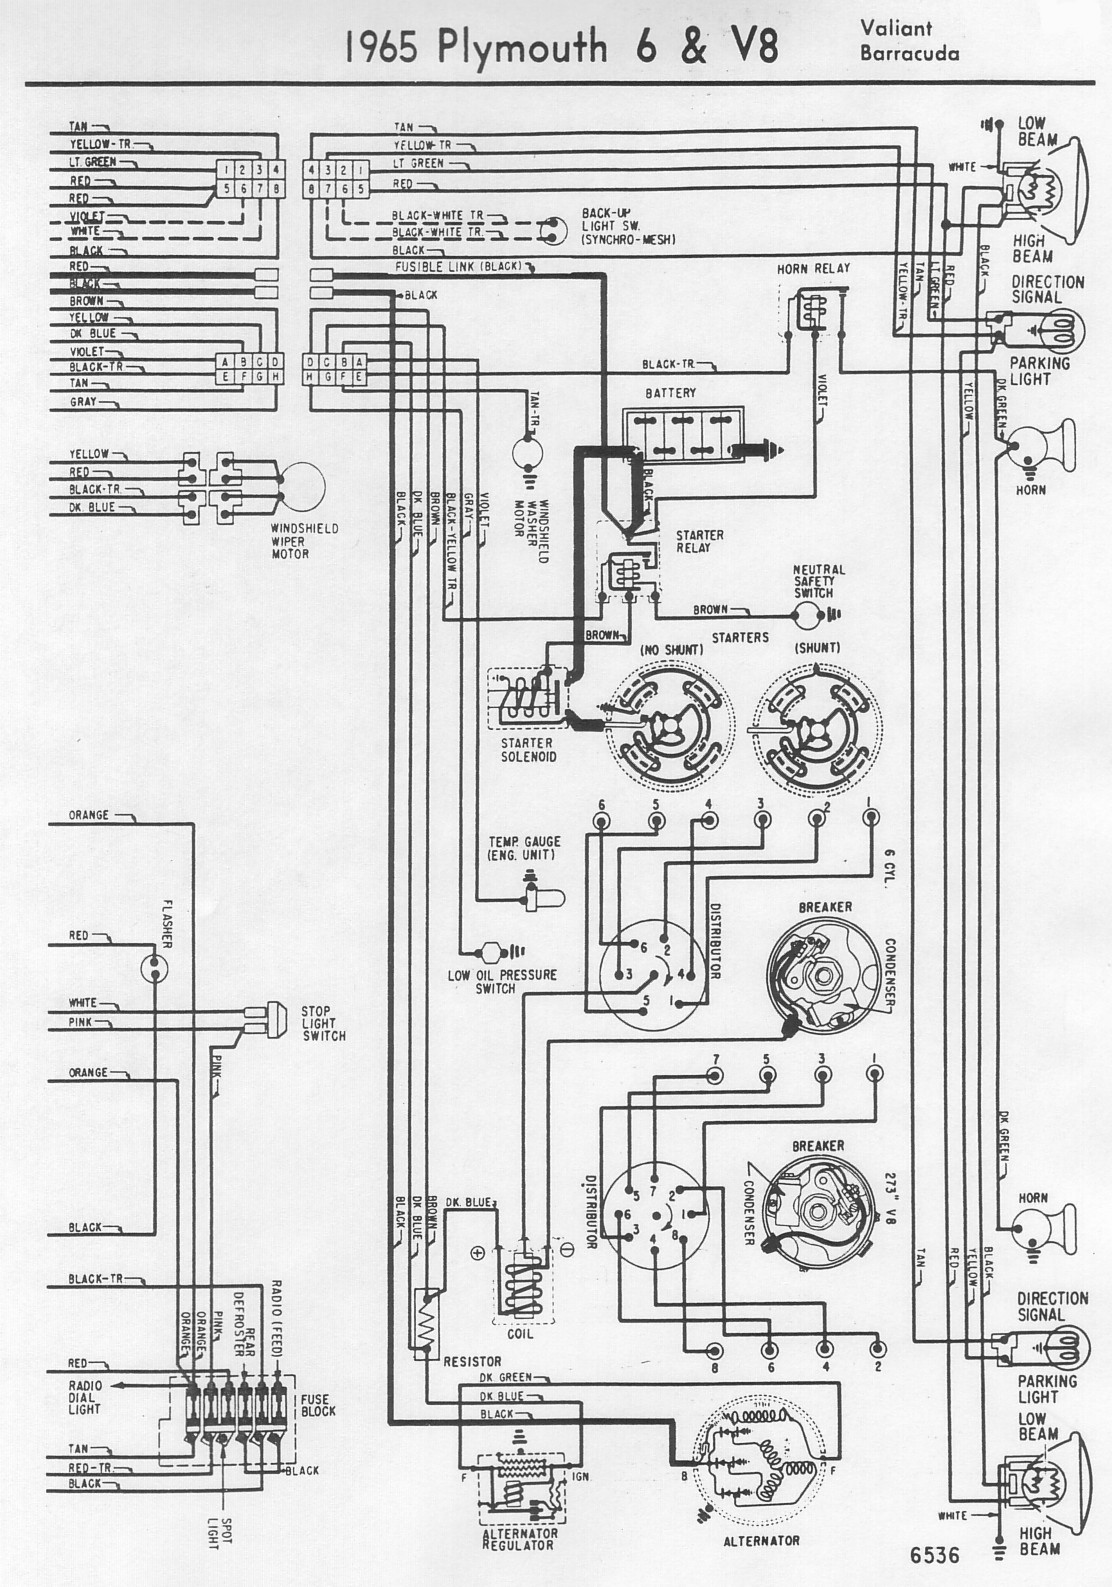 Free Auto Wiring Diagram: 1965 Plymouth Valiant or